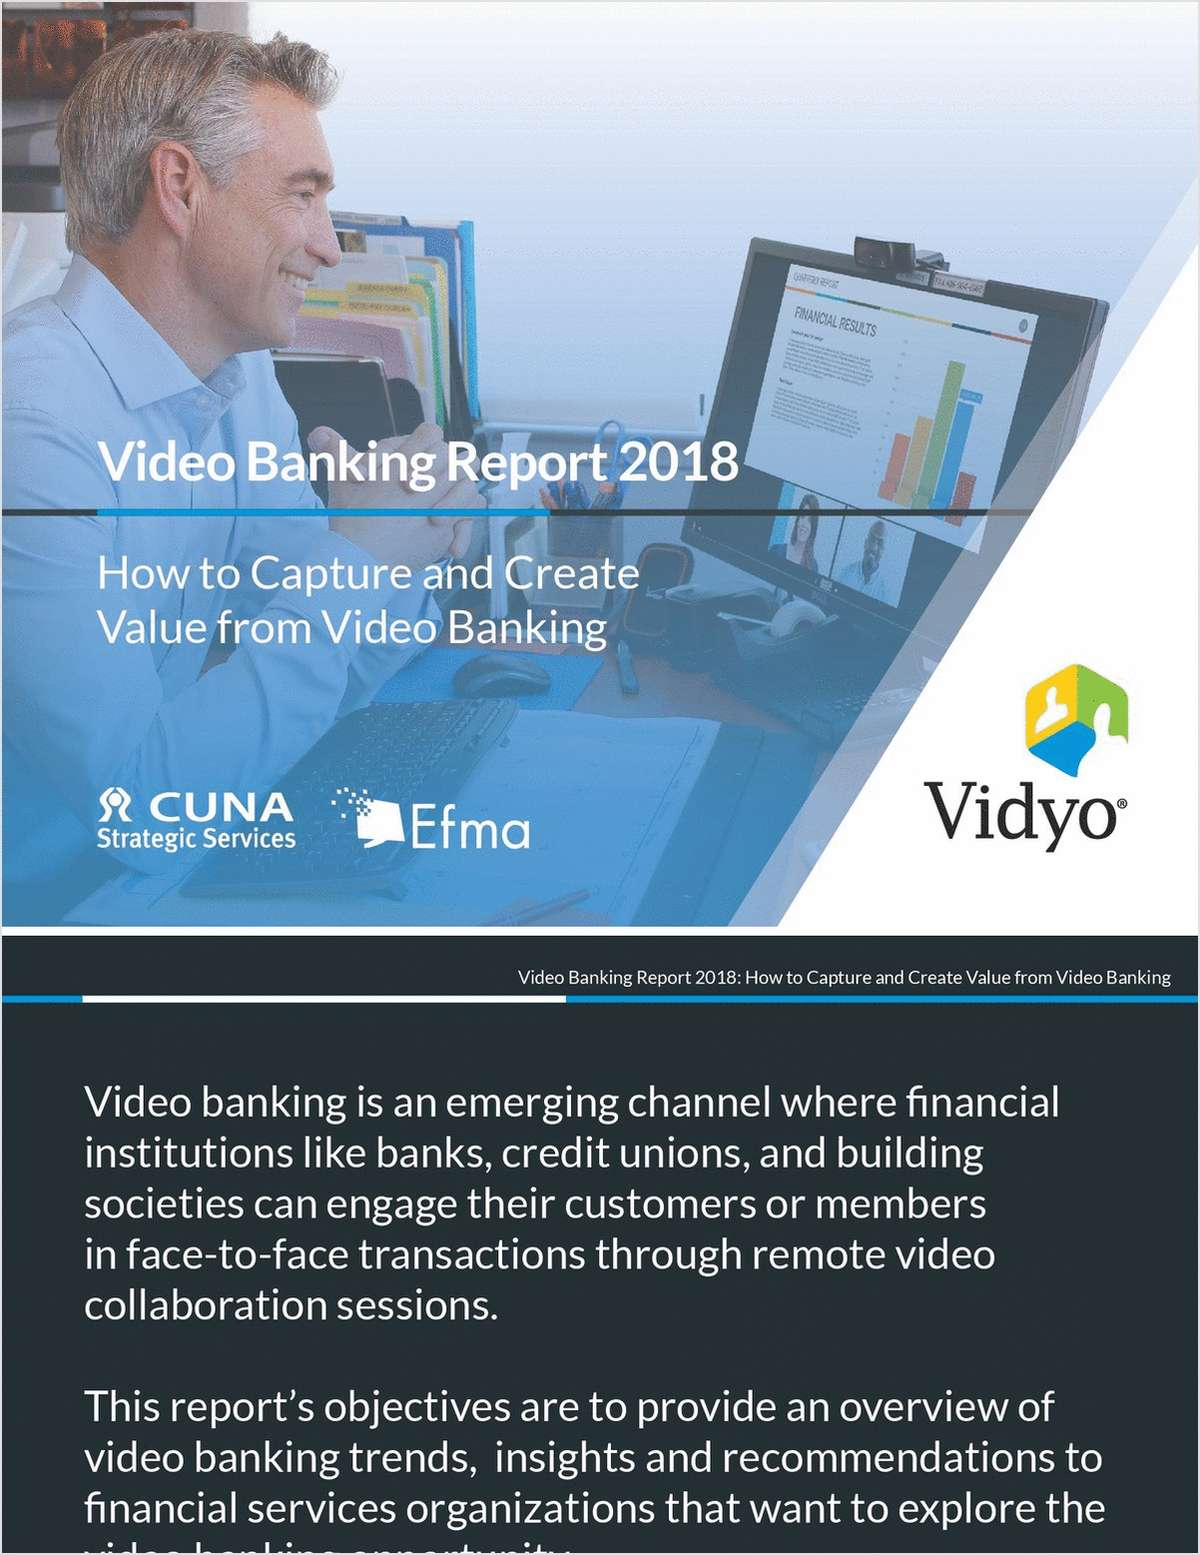 Strategies To Capture And Create Value From Video Banking